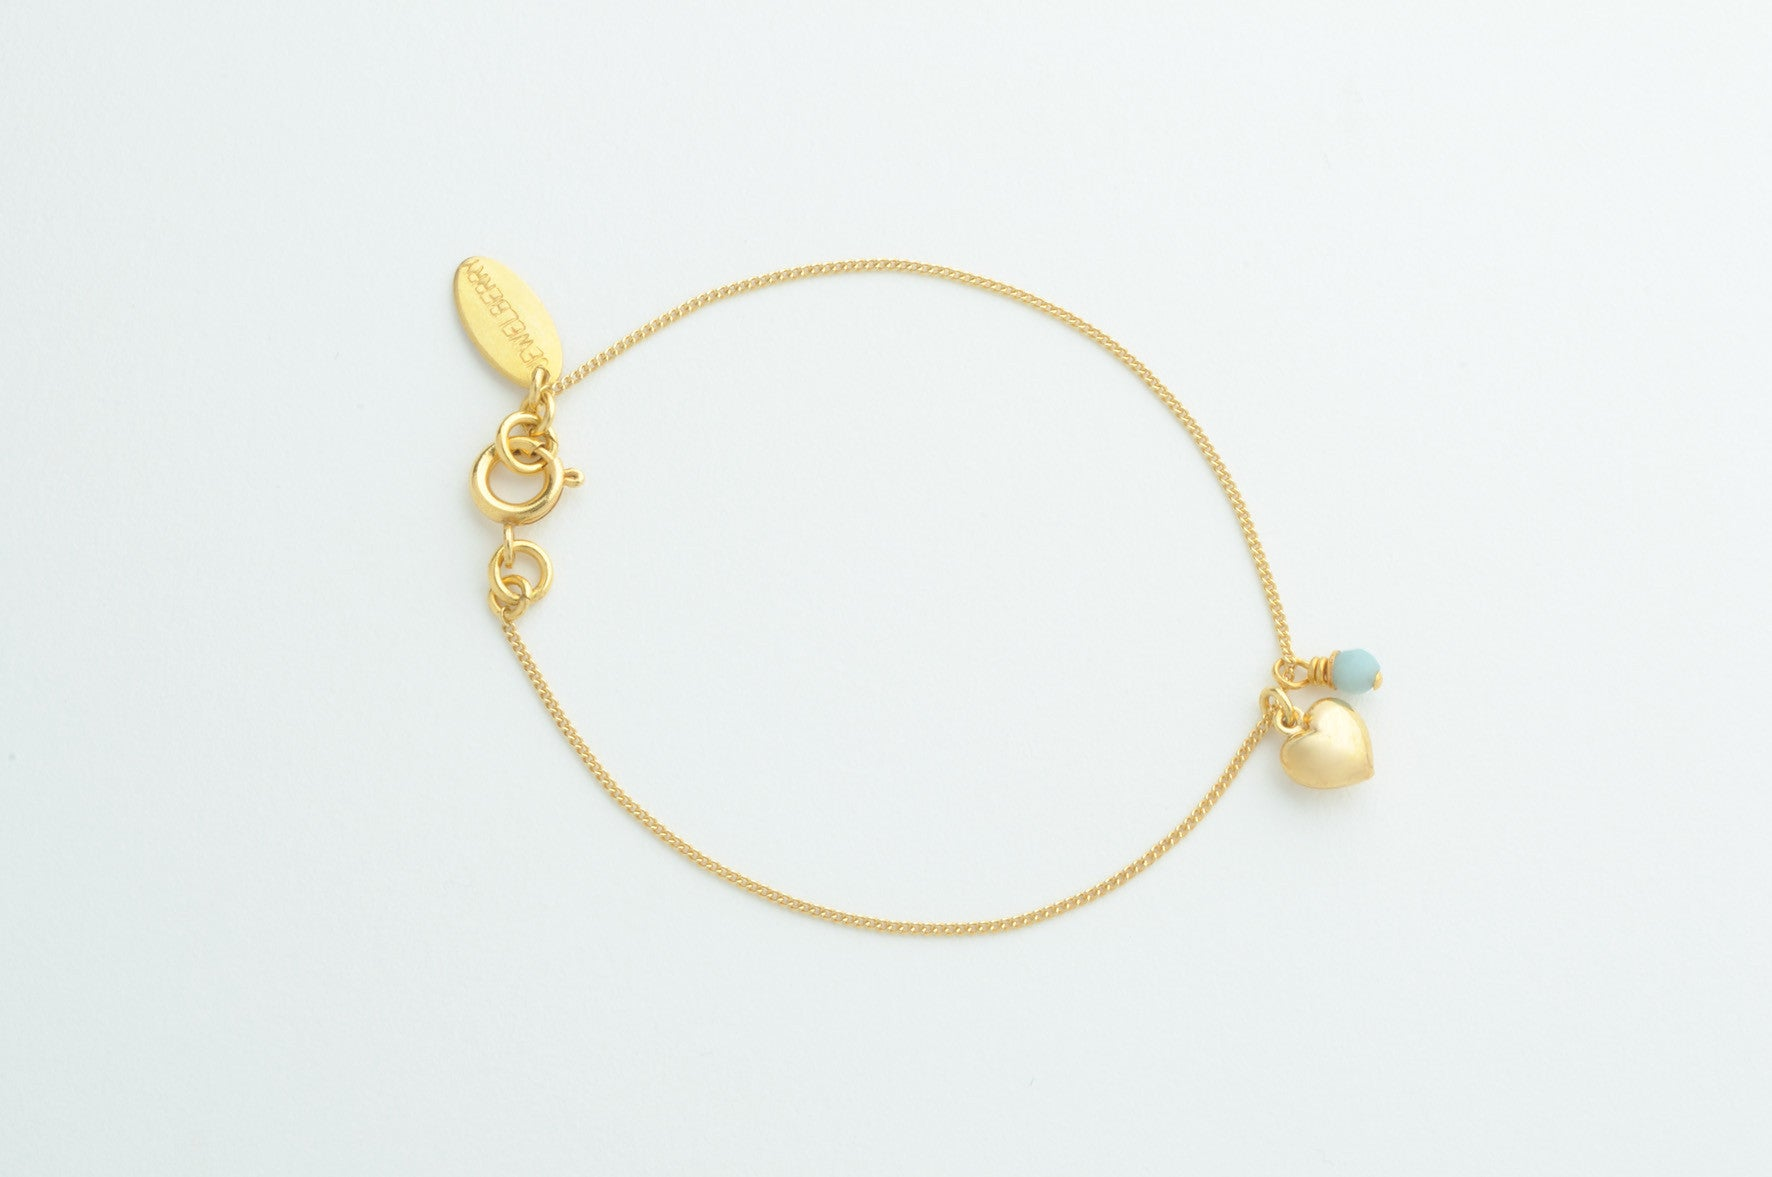 ....Armband PUFFED HEART vergoldet..Bracelet PUFFED HEART gold plated....